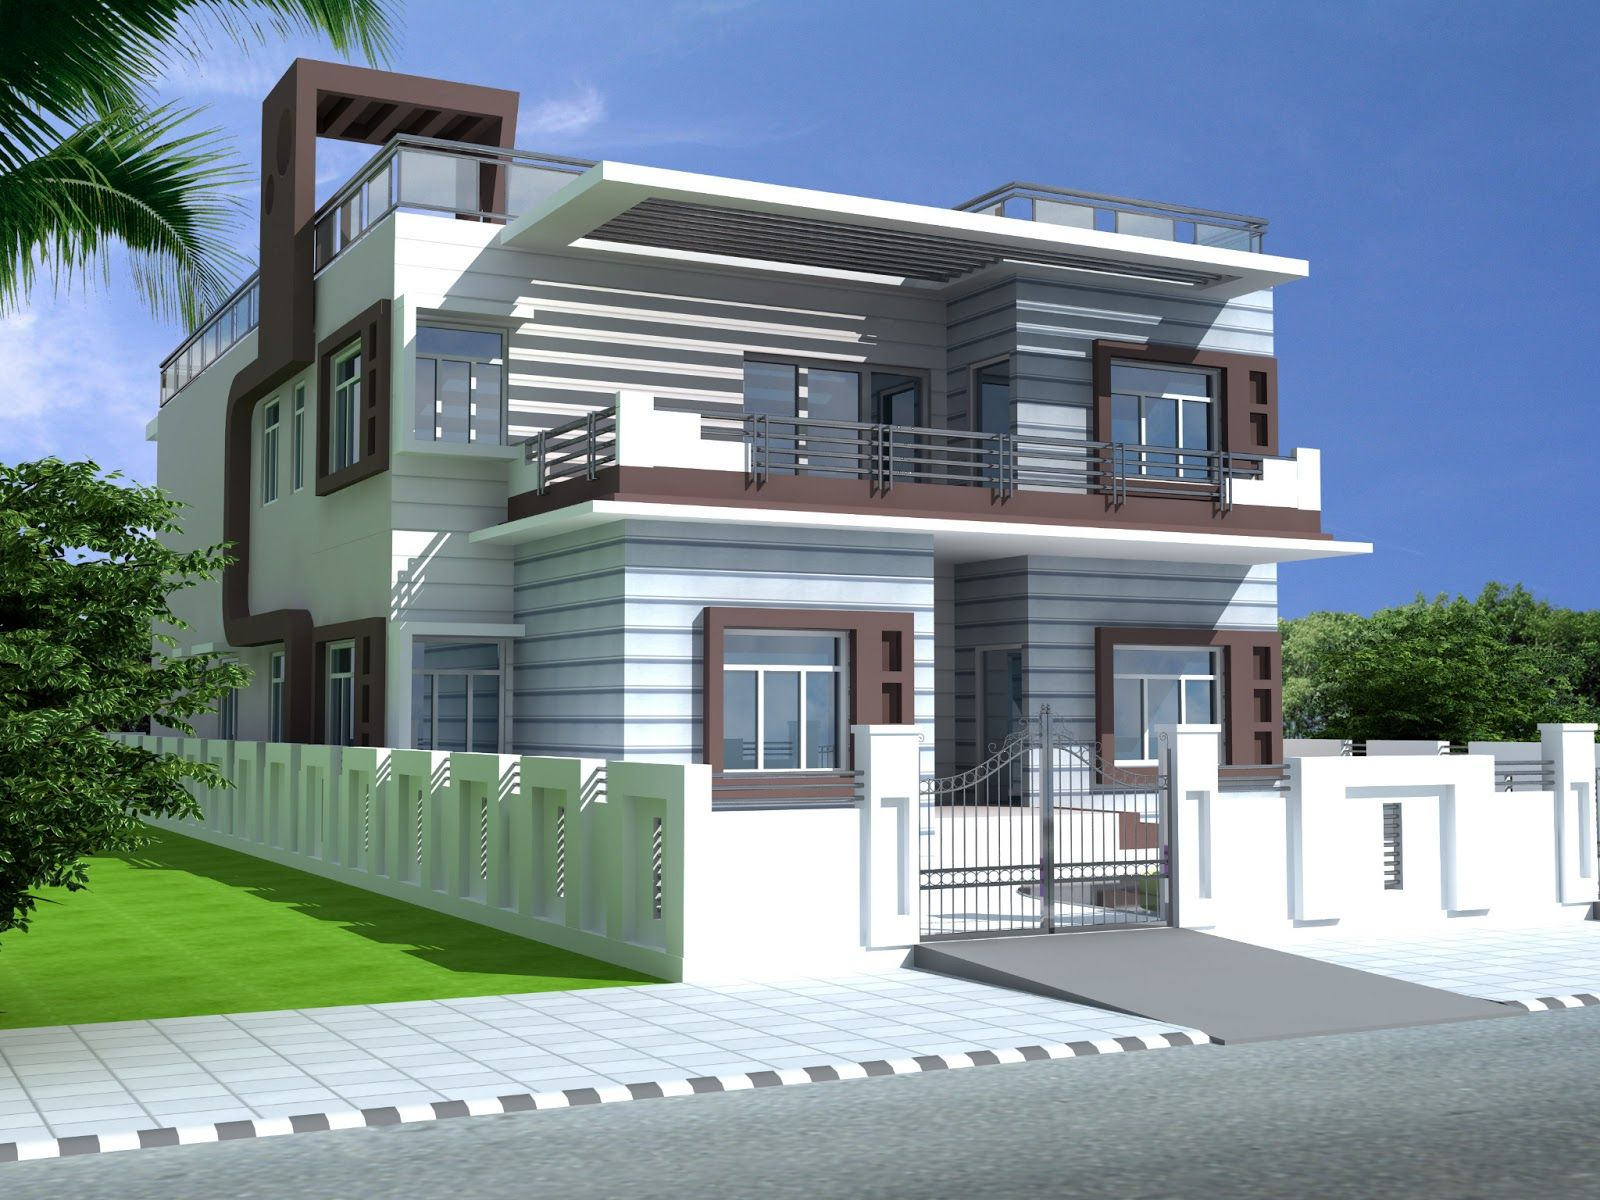 6 bedrooms duplex house design in 390m2 13m x 30m for Modern villa plans and elevations